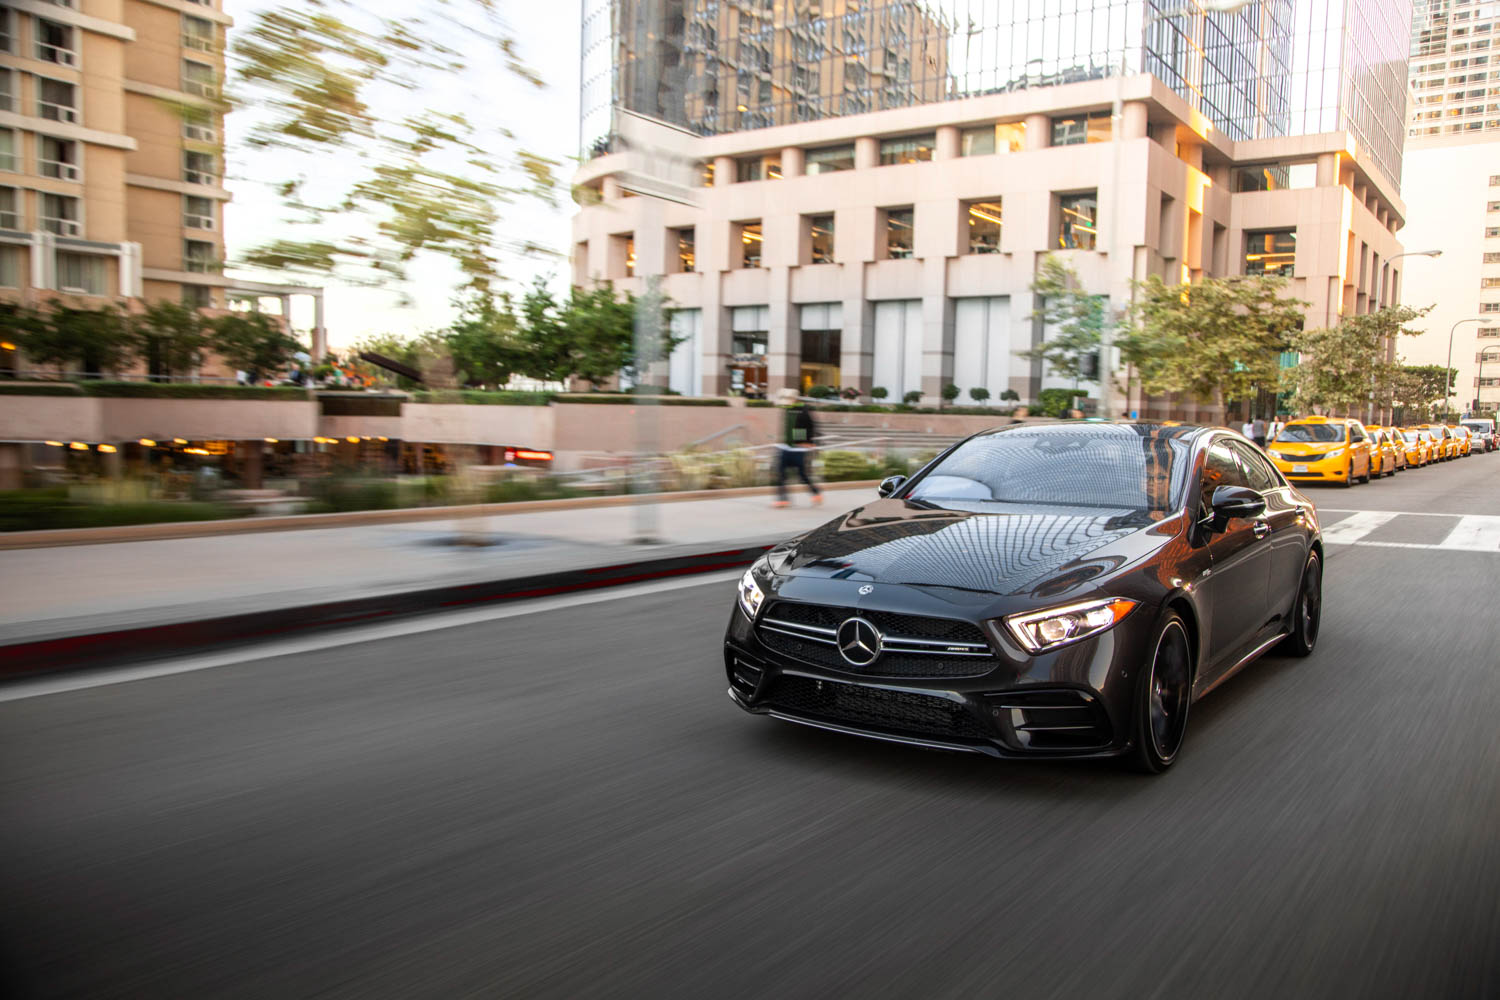 2019 Mercedes-AMG CLS53 driving front 3/4